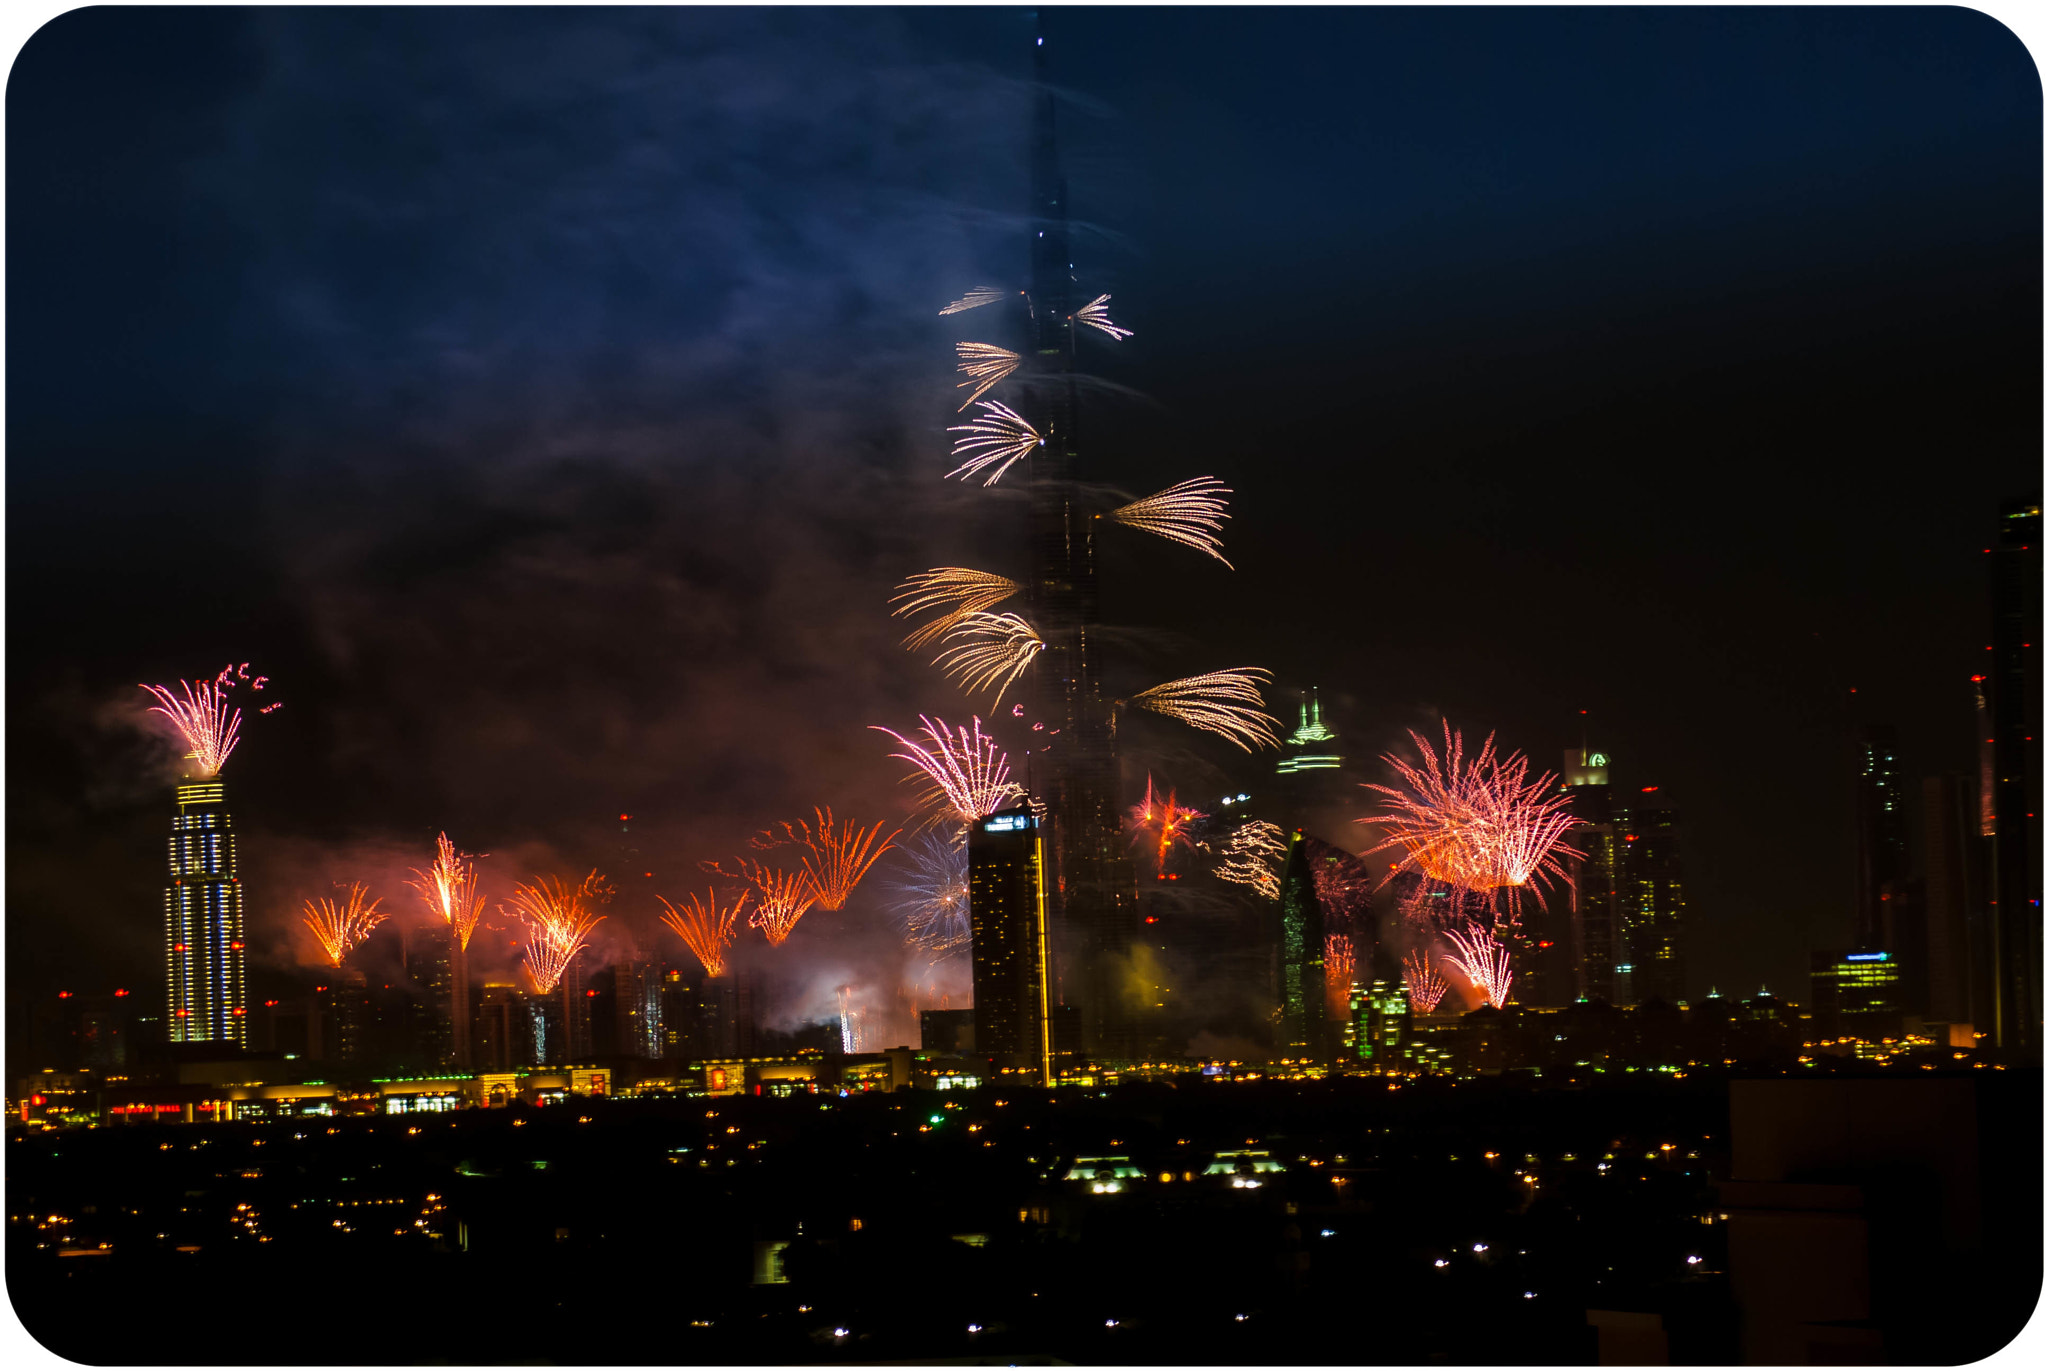 Photograph New Year Dubai by Noman Nasrullah on 500px